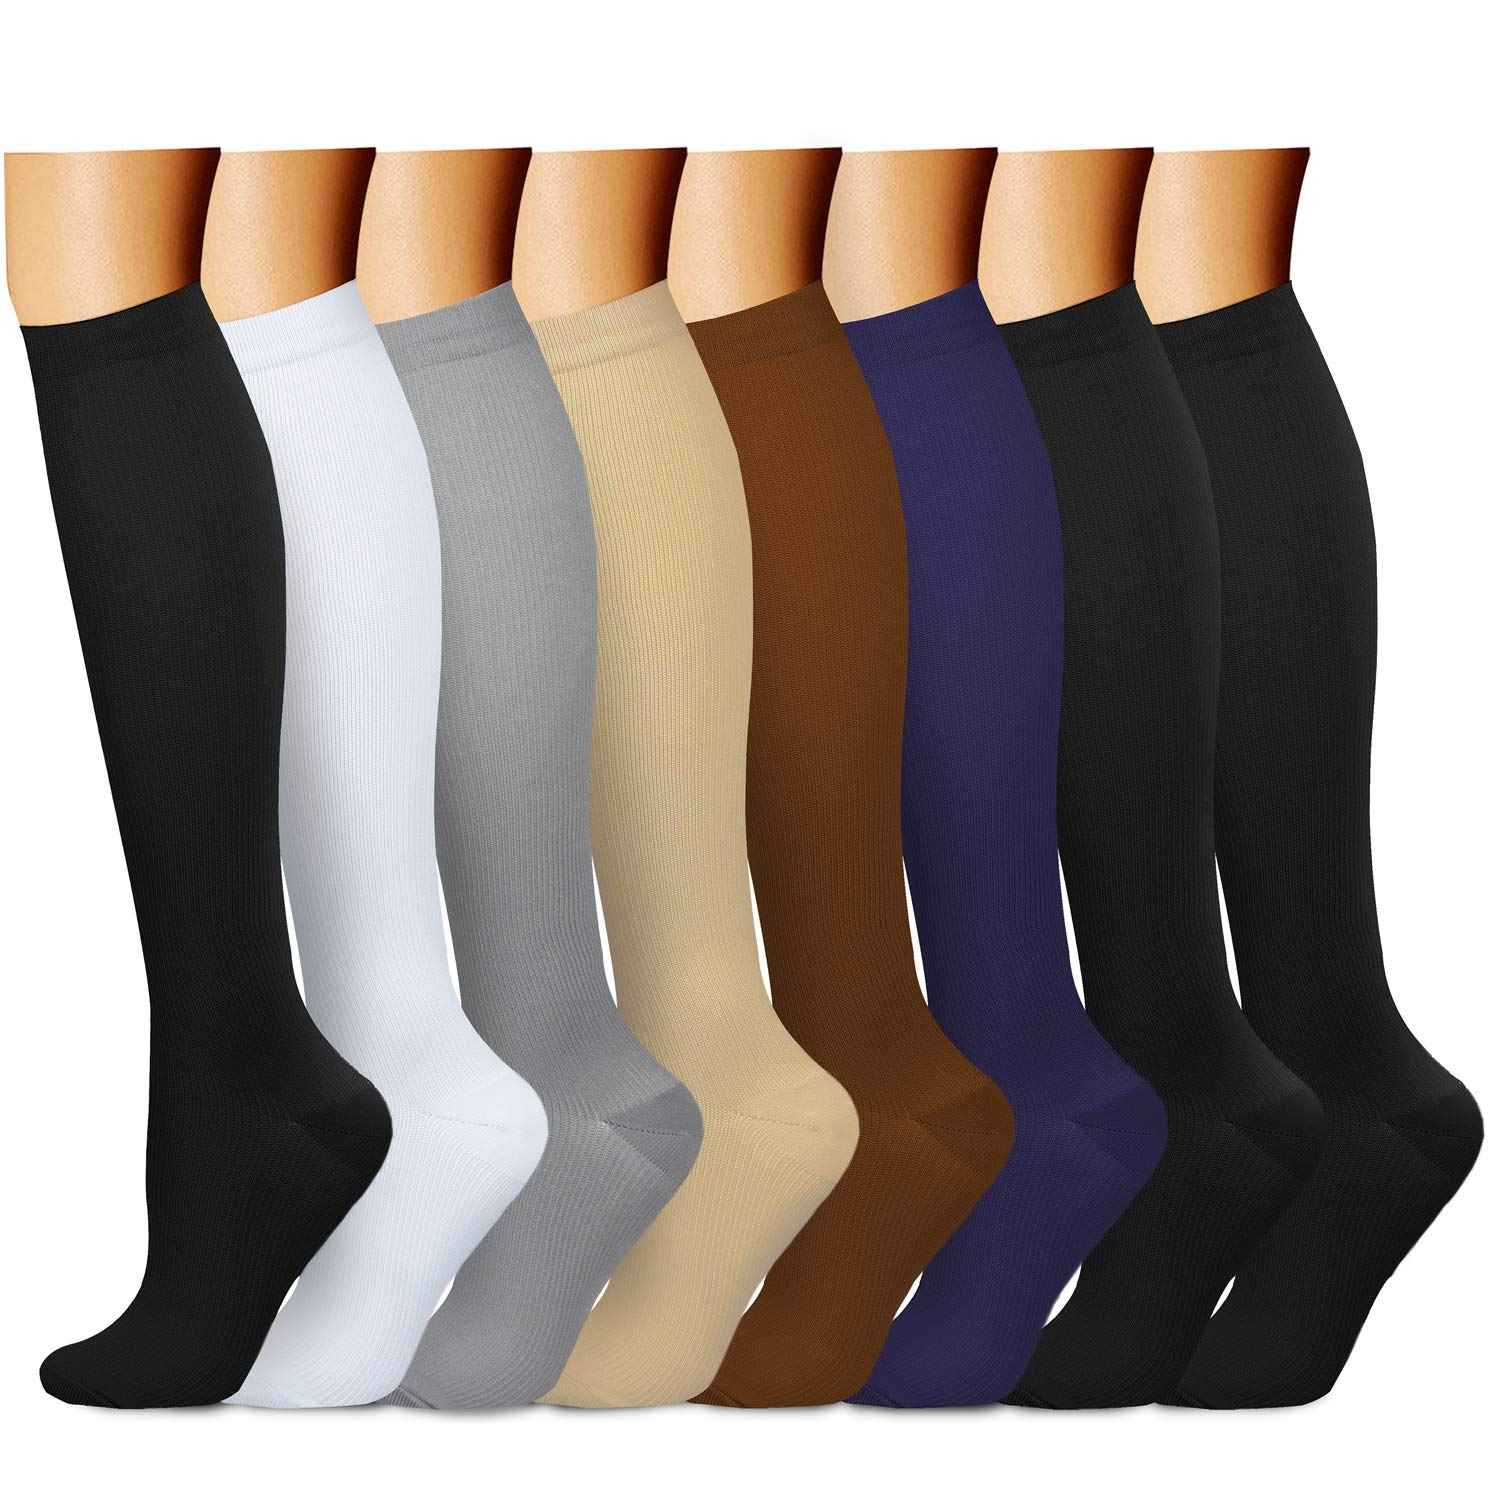 CHARMKING Compression Socks 15-20 mmHg is Best Graduated Athletic & Medical for Men & Women Running, Travel, Nurses, Pregnant - Boost Performance, Blood Circulation & Recovery (Small/Medium,Assorted)